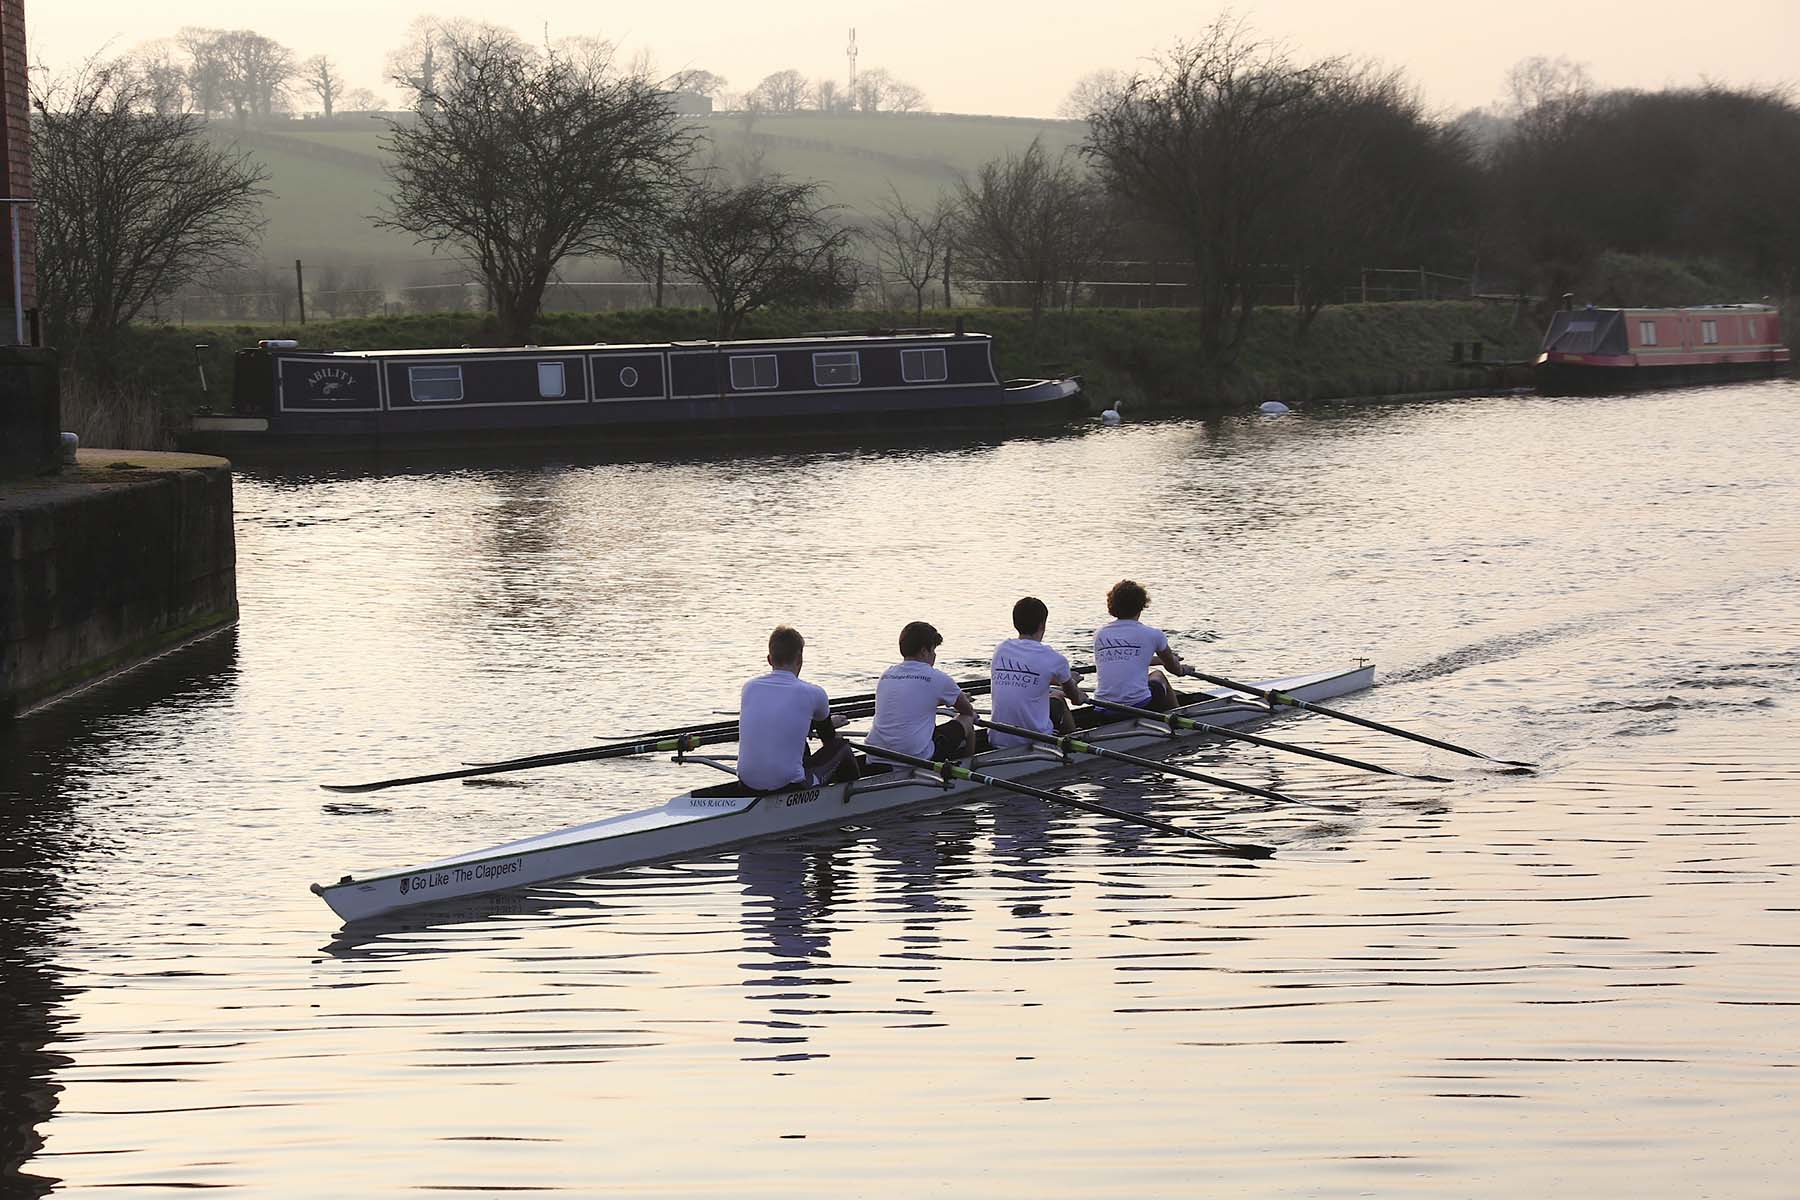 Rowers on the River Weaver